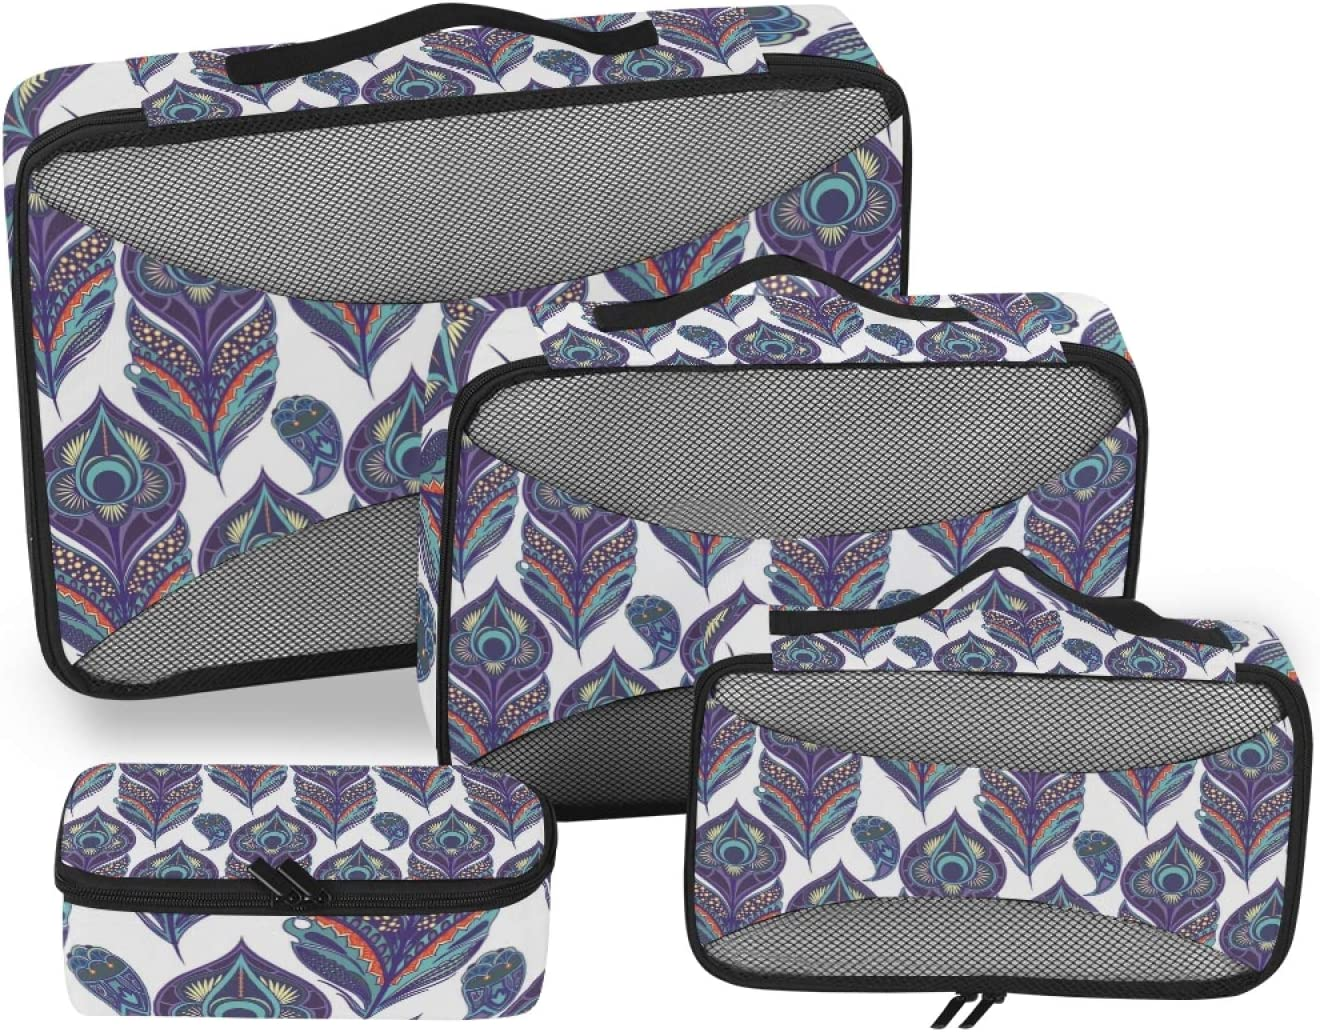 Peacock Feathers Sacramento Mall Packing Cubes Accessorie 4-Pcs Travel Popular brand in the world Organizer